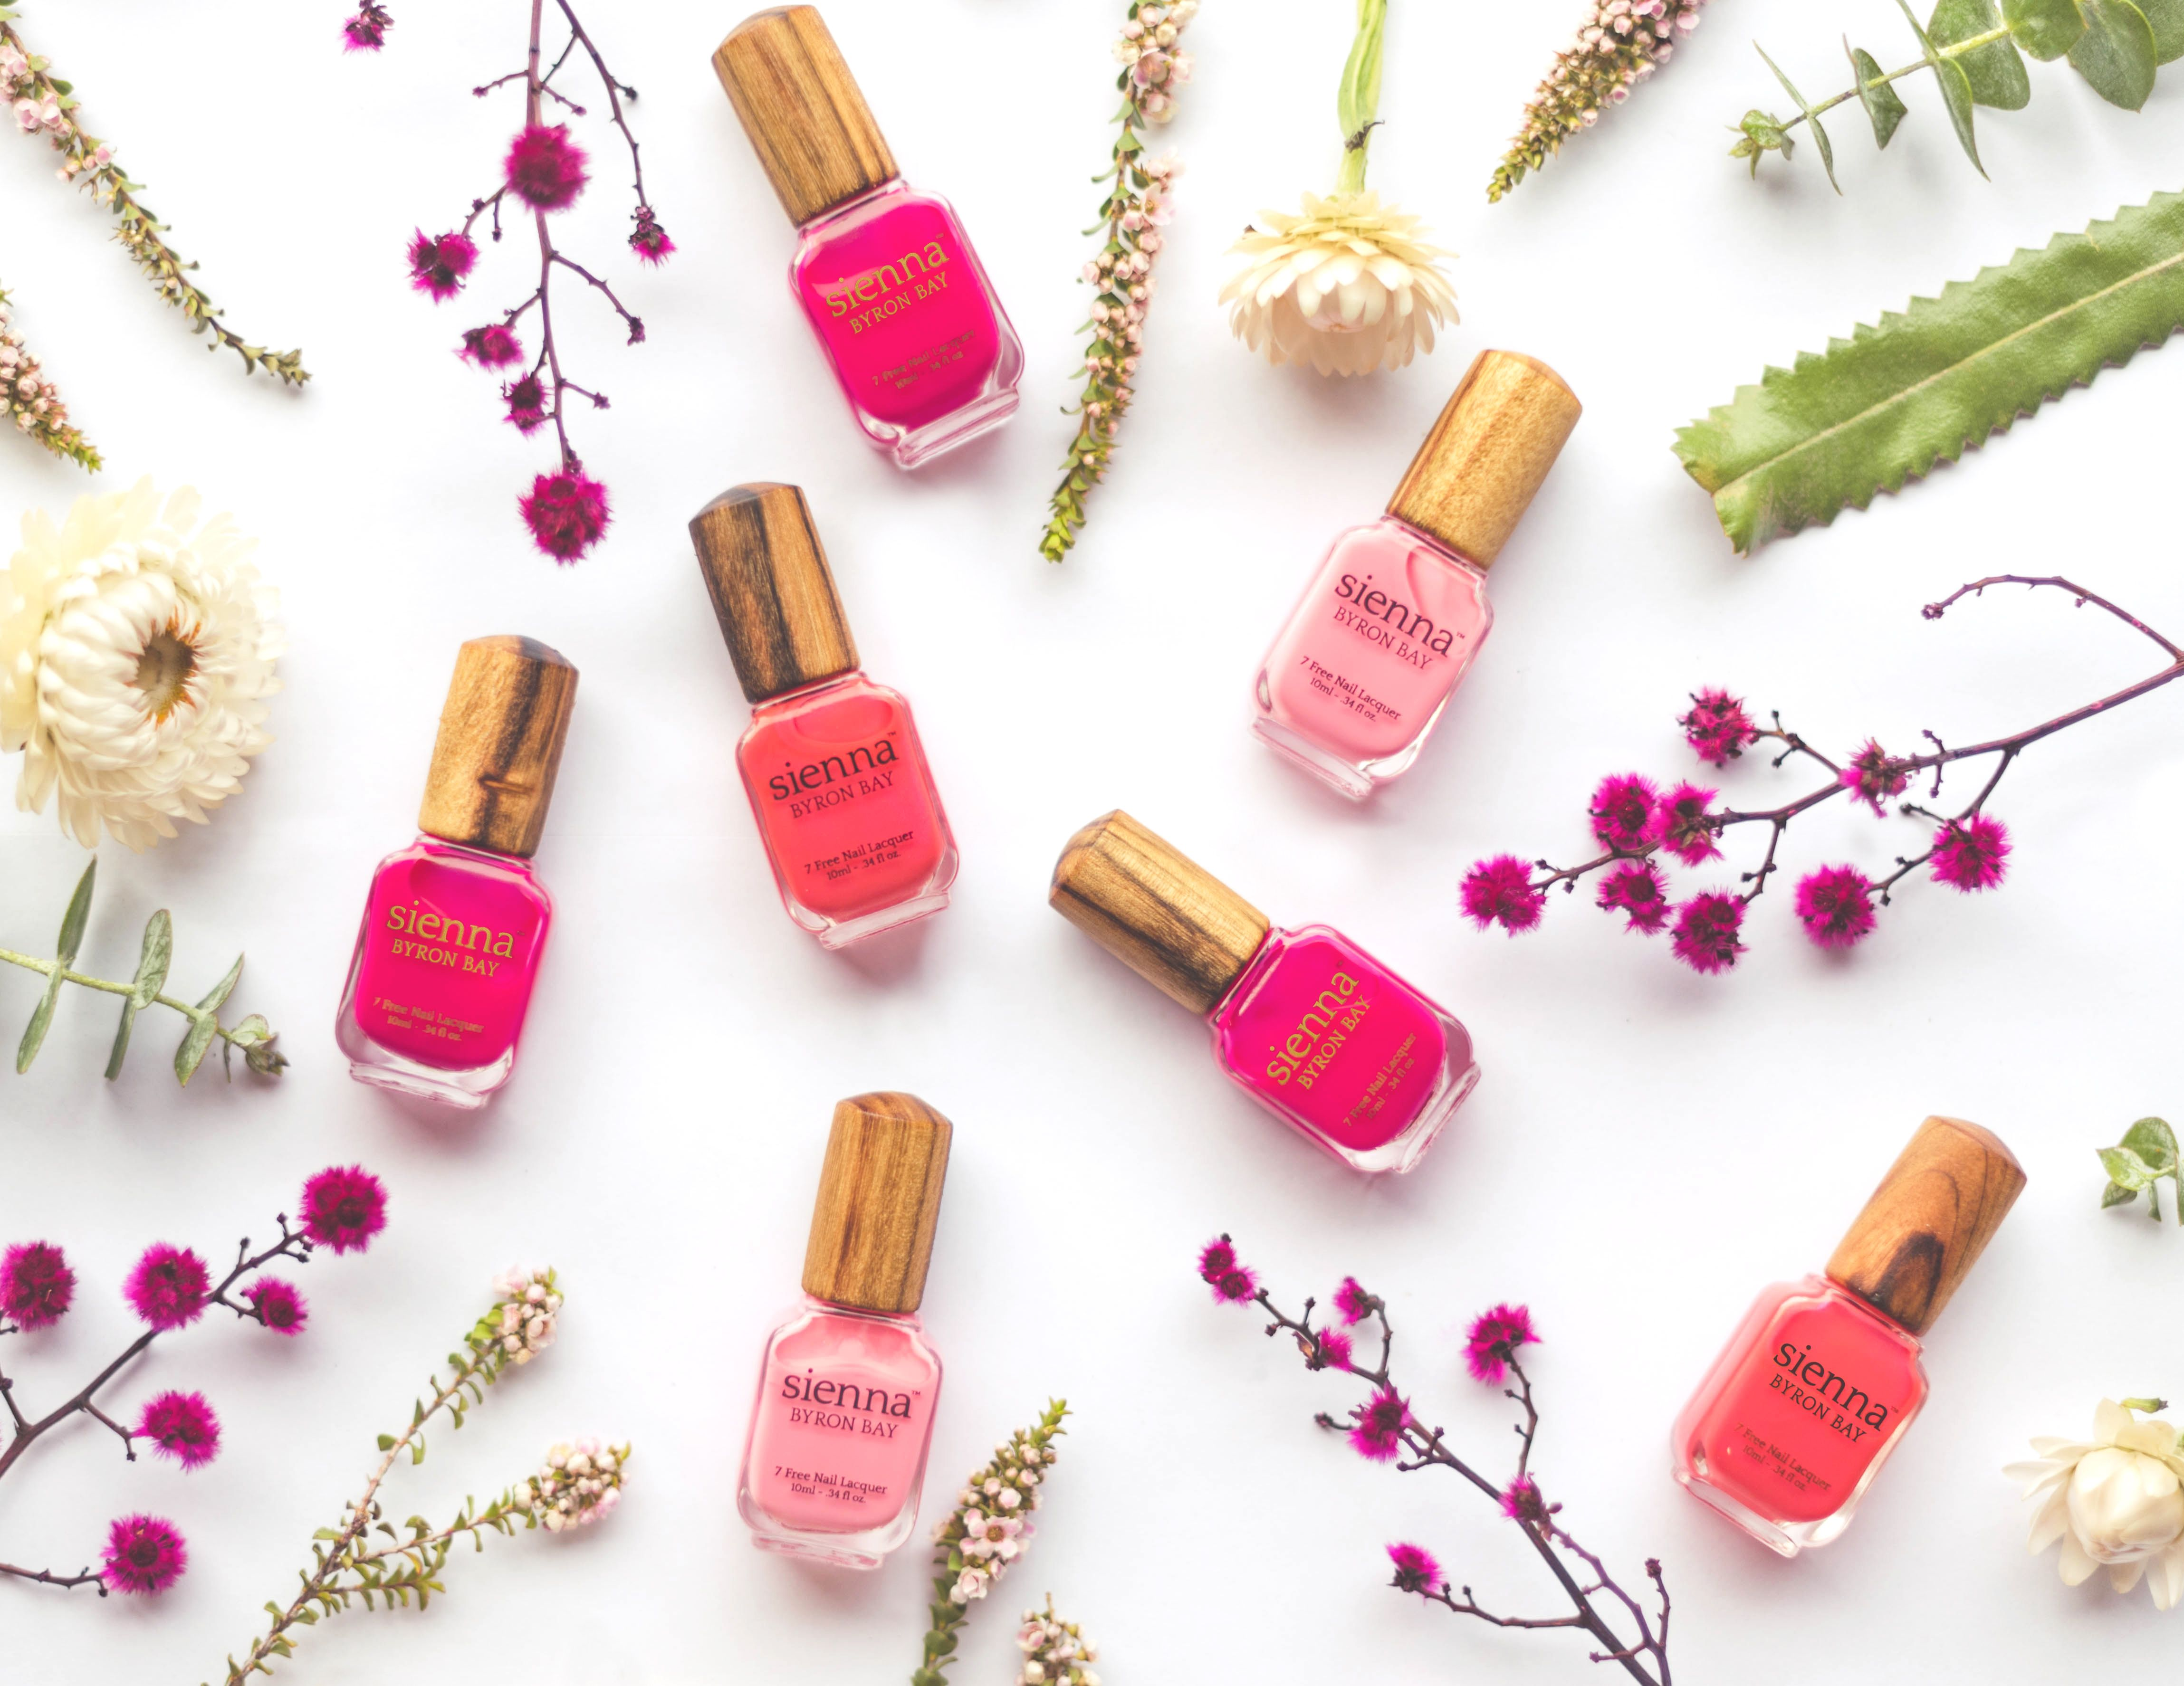 Toxin free nail polish with sustainably sourced Camphor